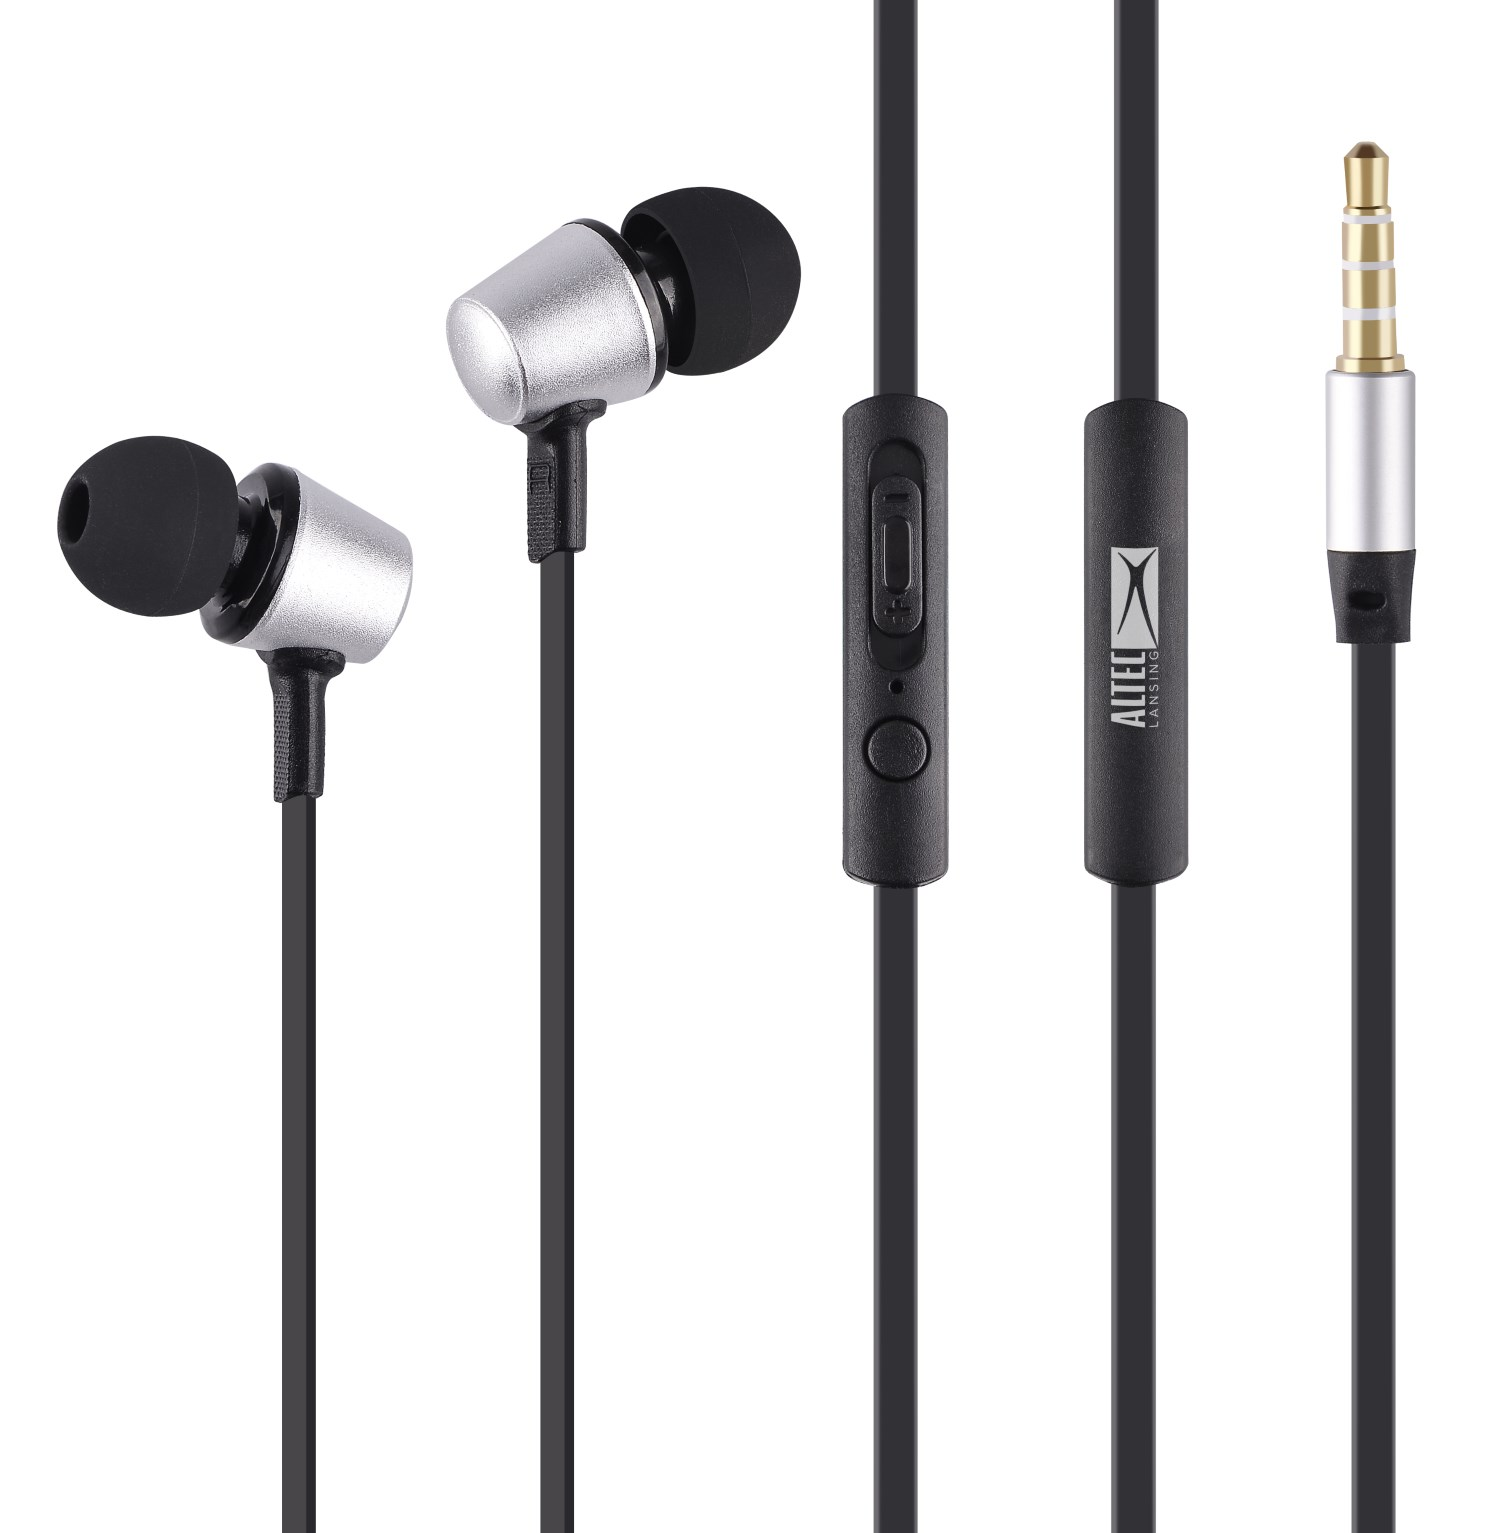 ALTEC LANSING earphones Eternity, mic, Button , 100dB, ασημί - ALTEC 21738